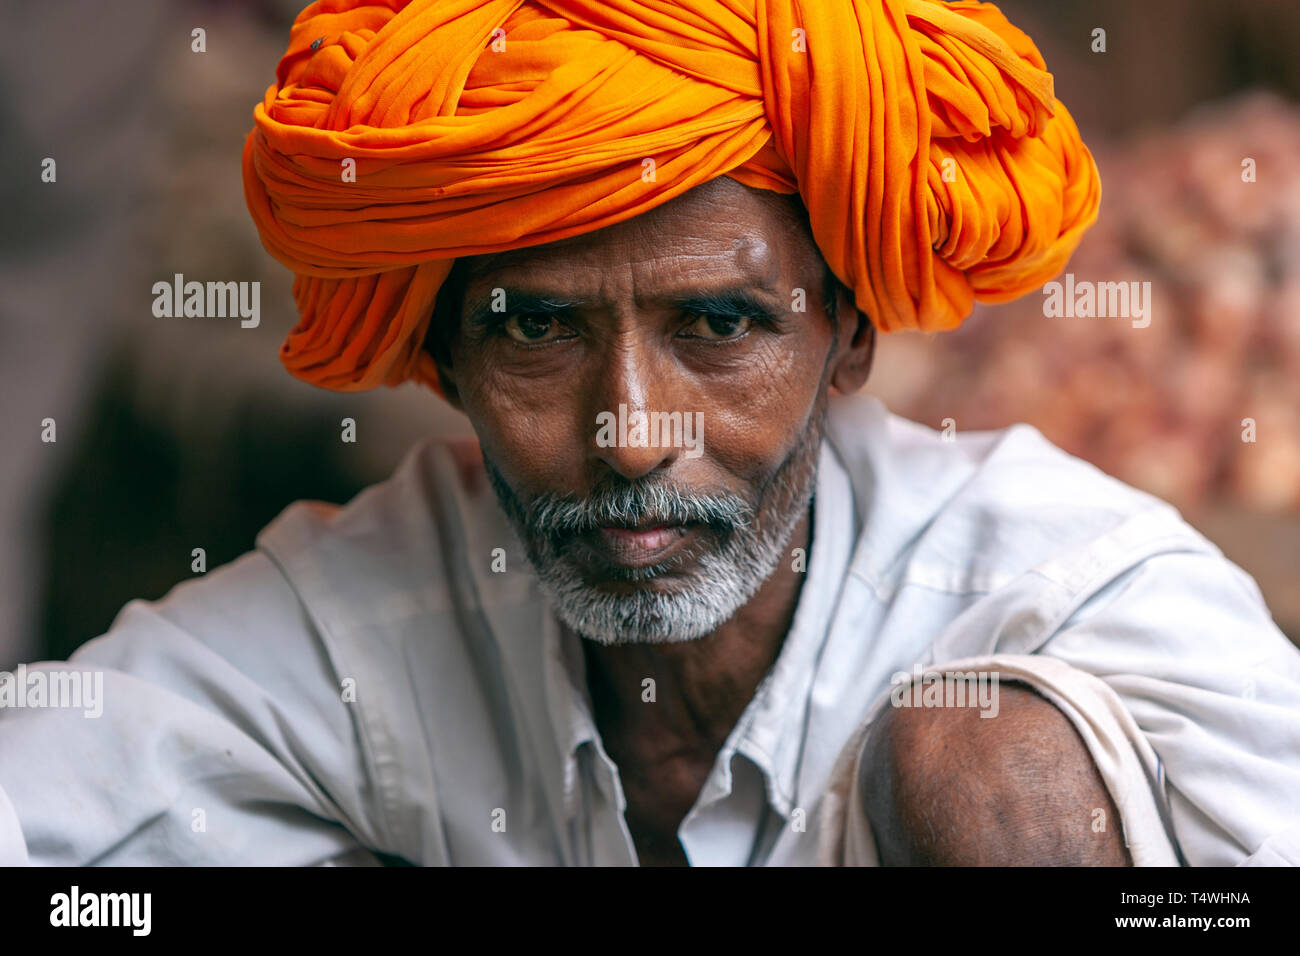 portrait-of-a-rajasthani-beard-man-with-